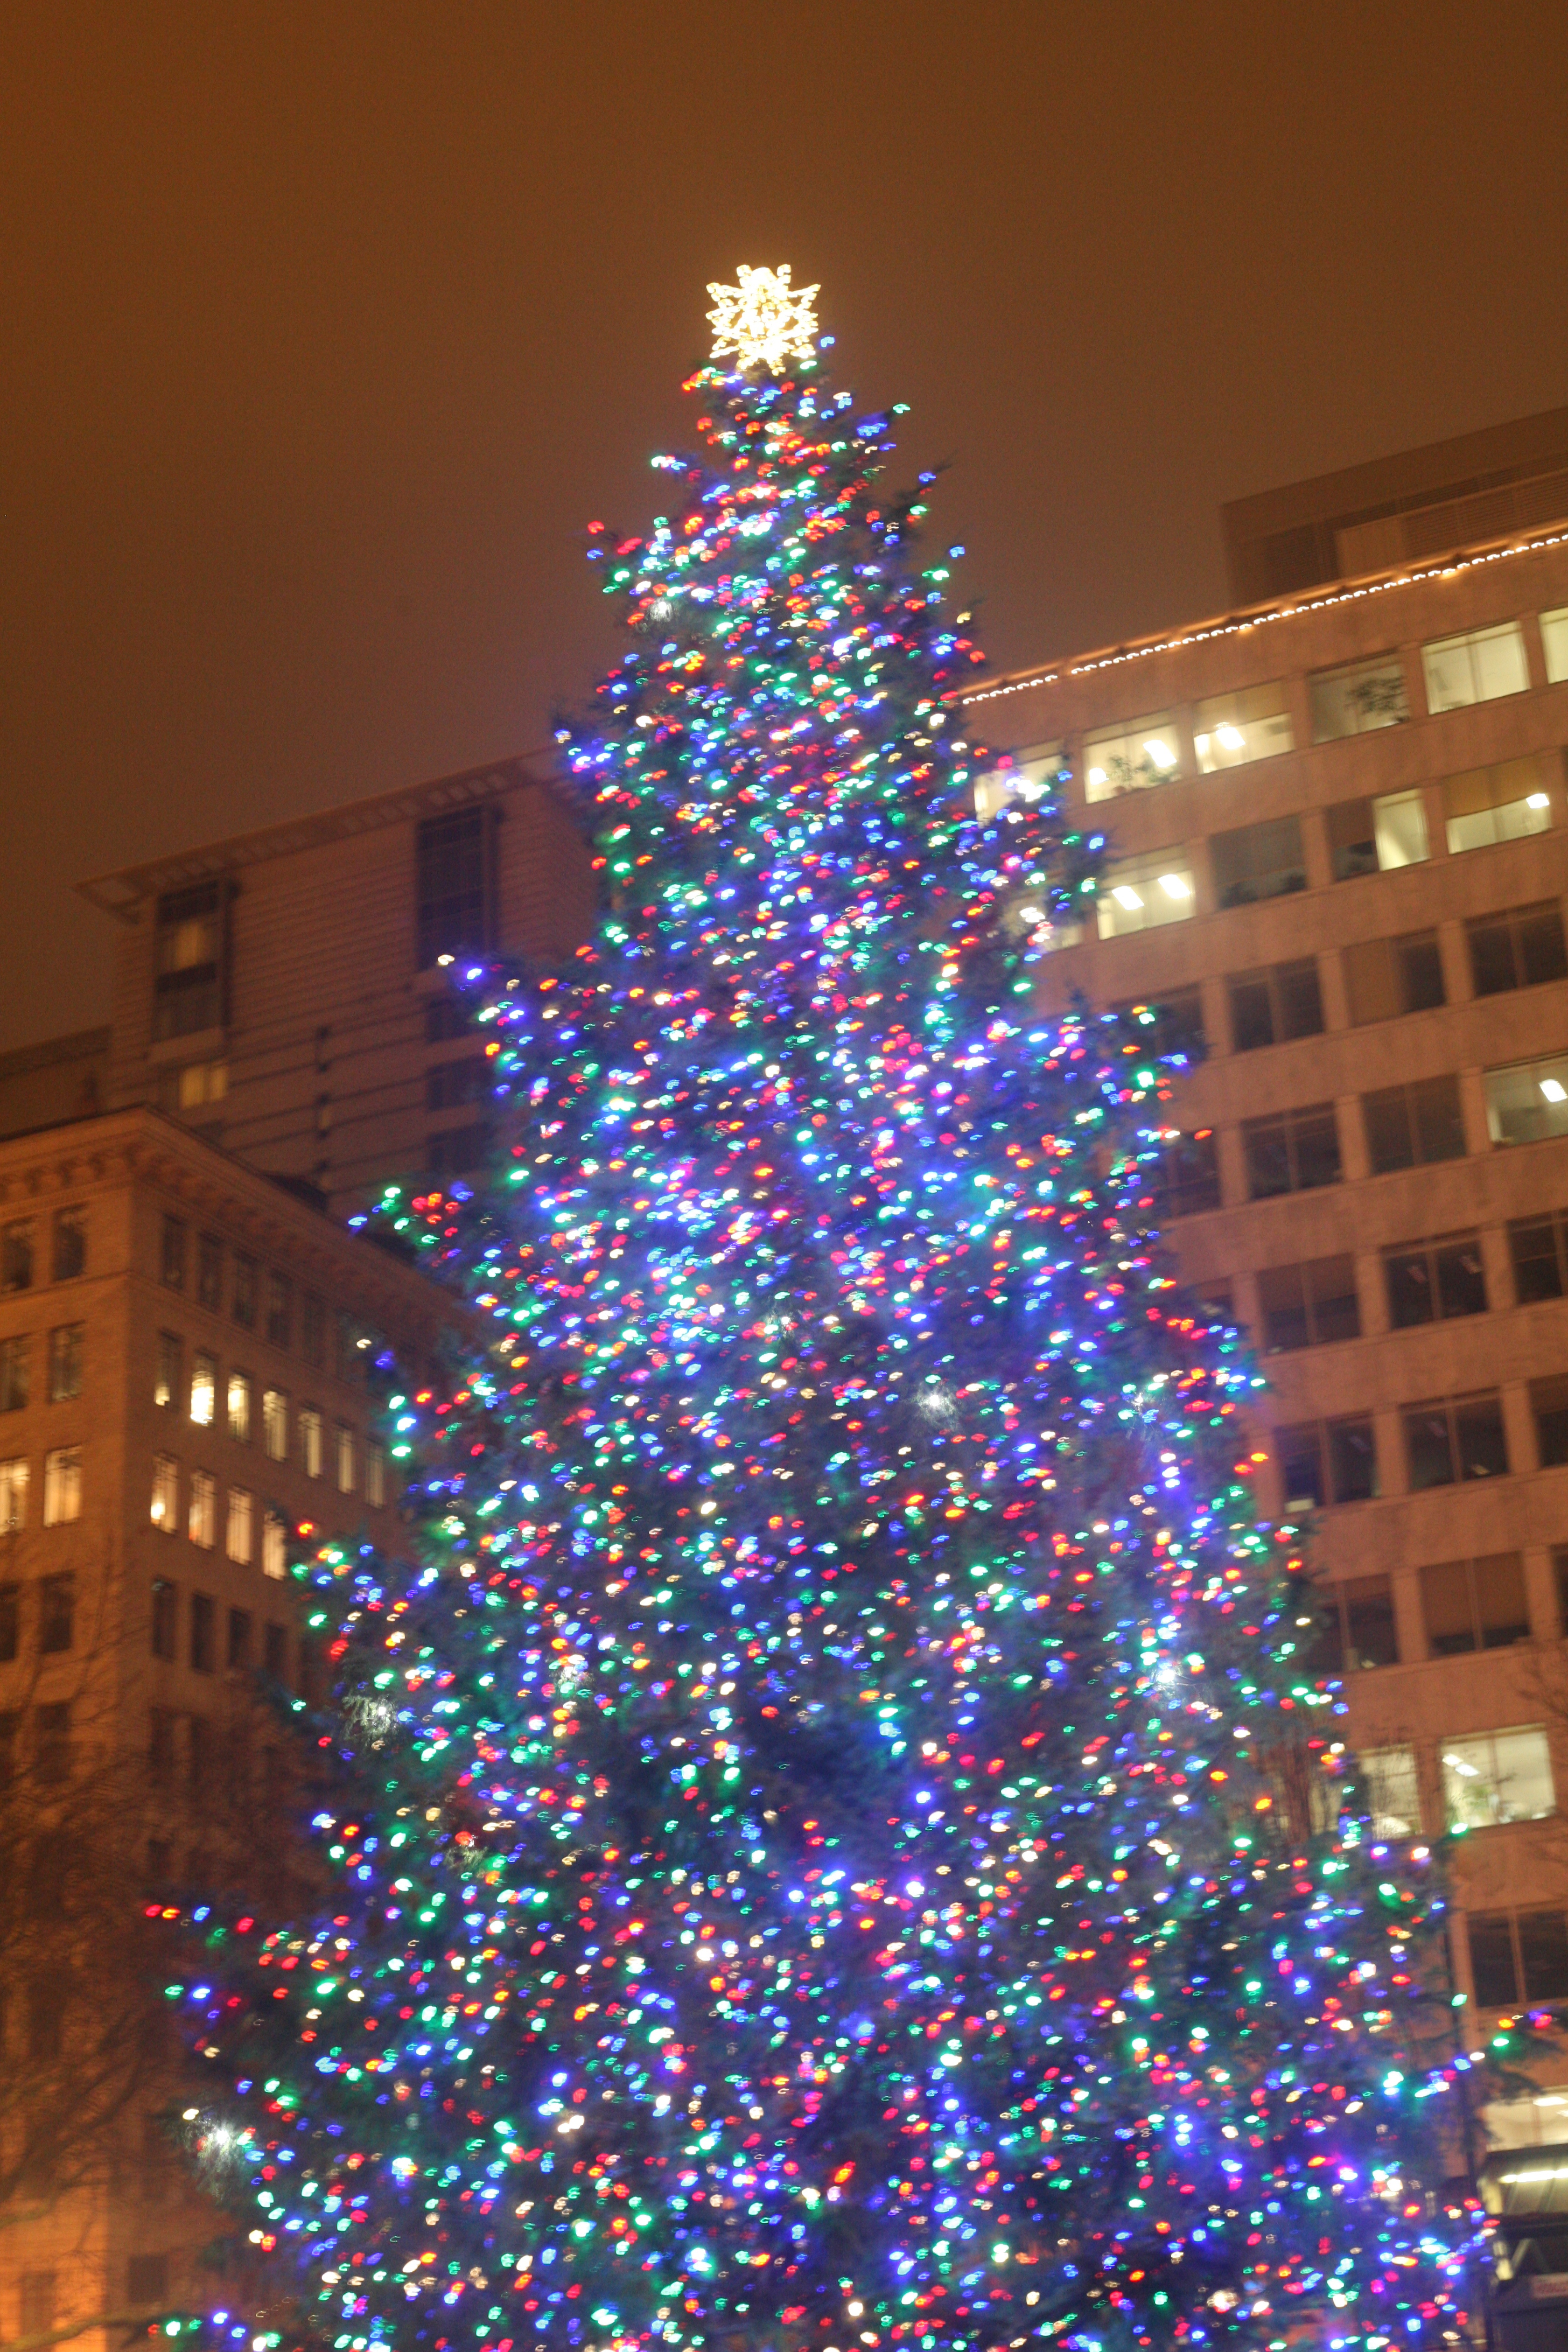 Portland Christmas Tree.Portland Christmas Tree Travel With Laughter